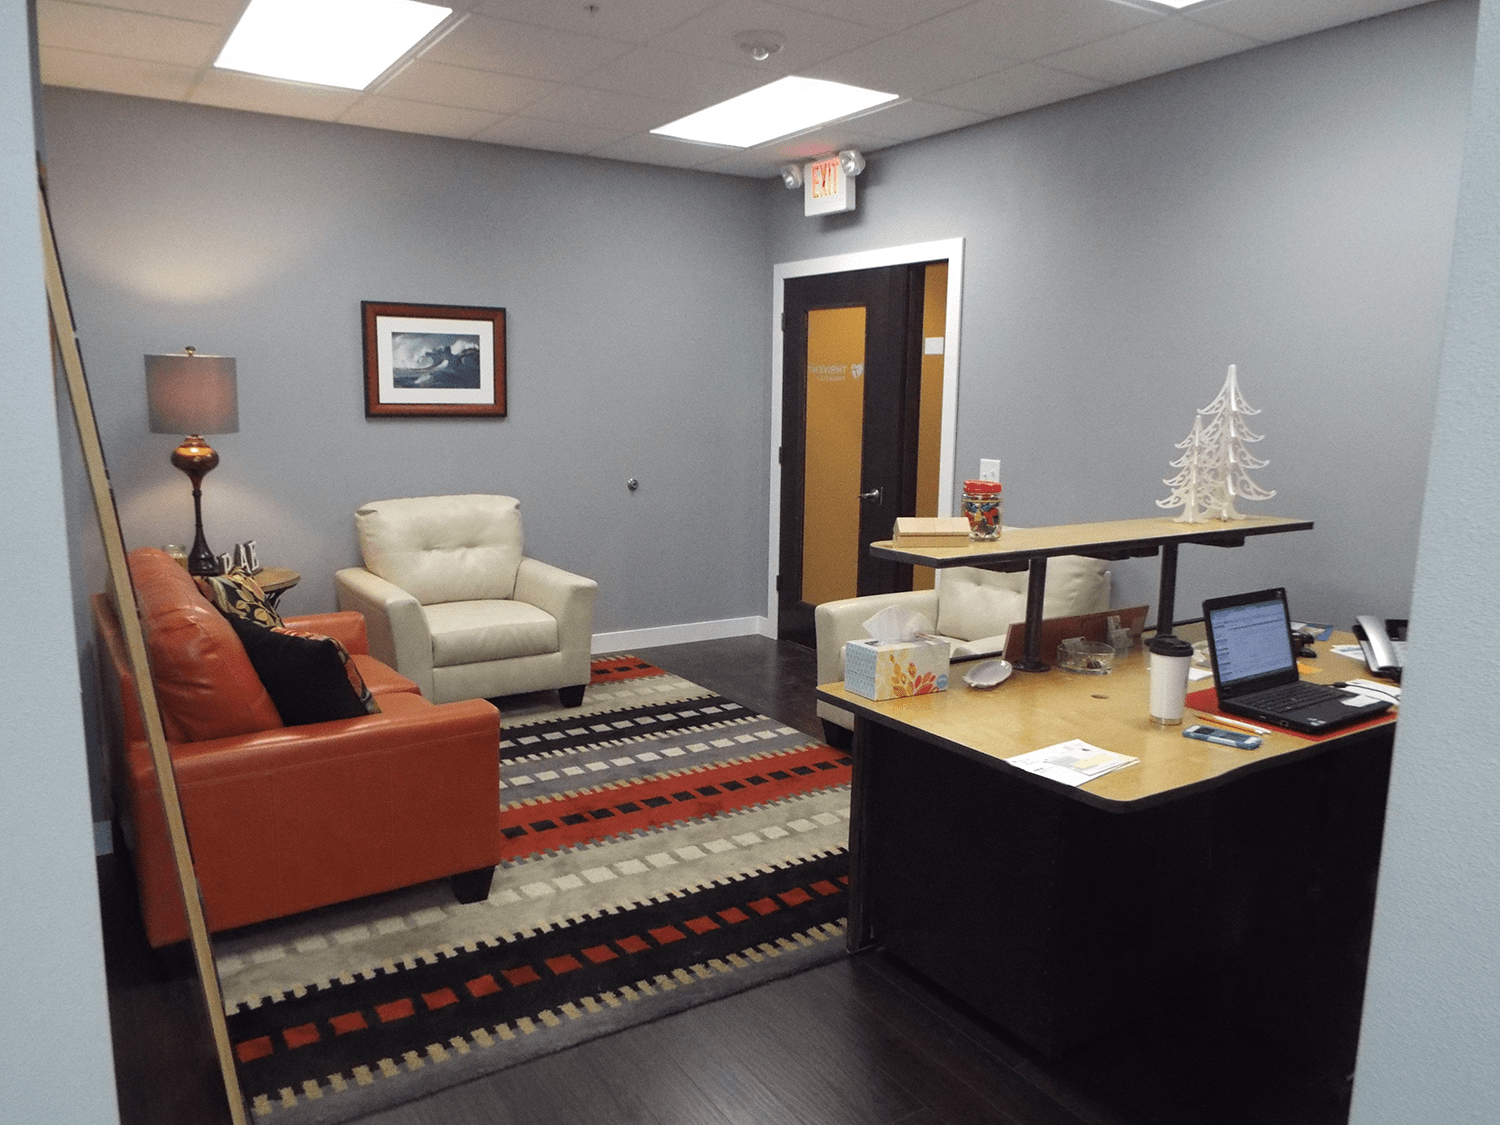 Thrivent Financial - Reception area